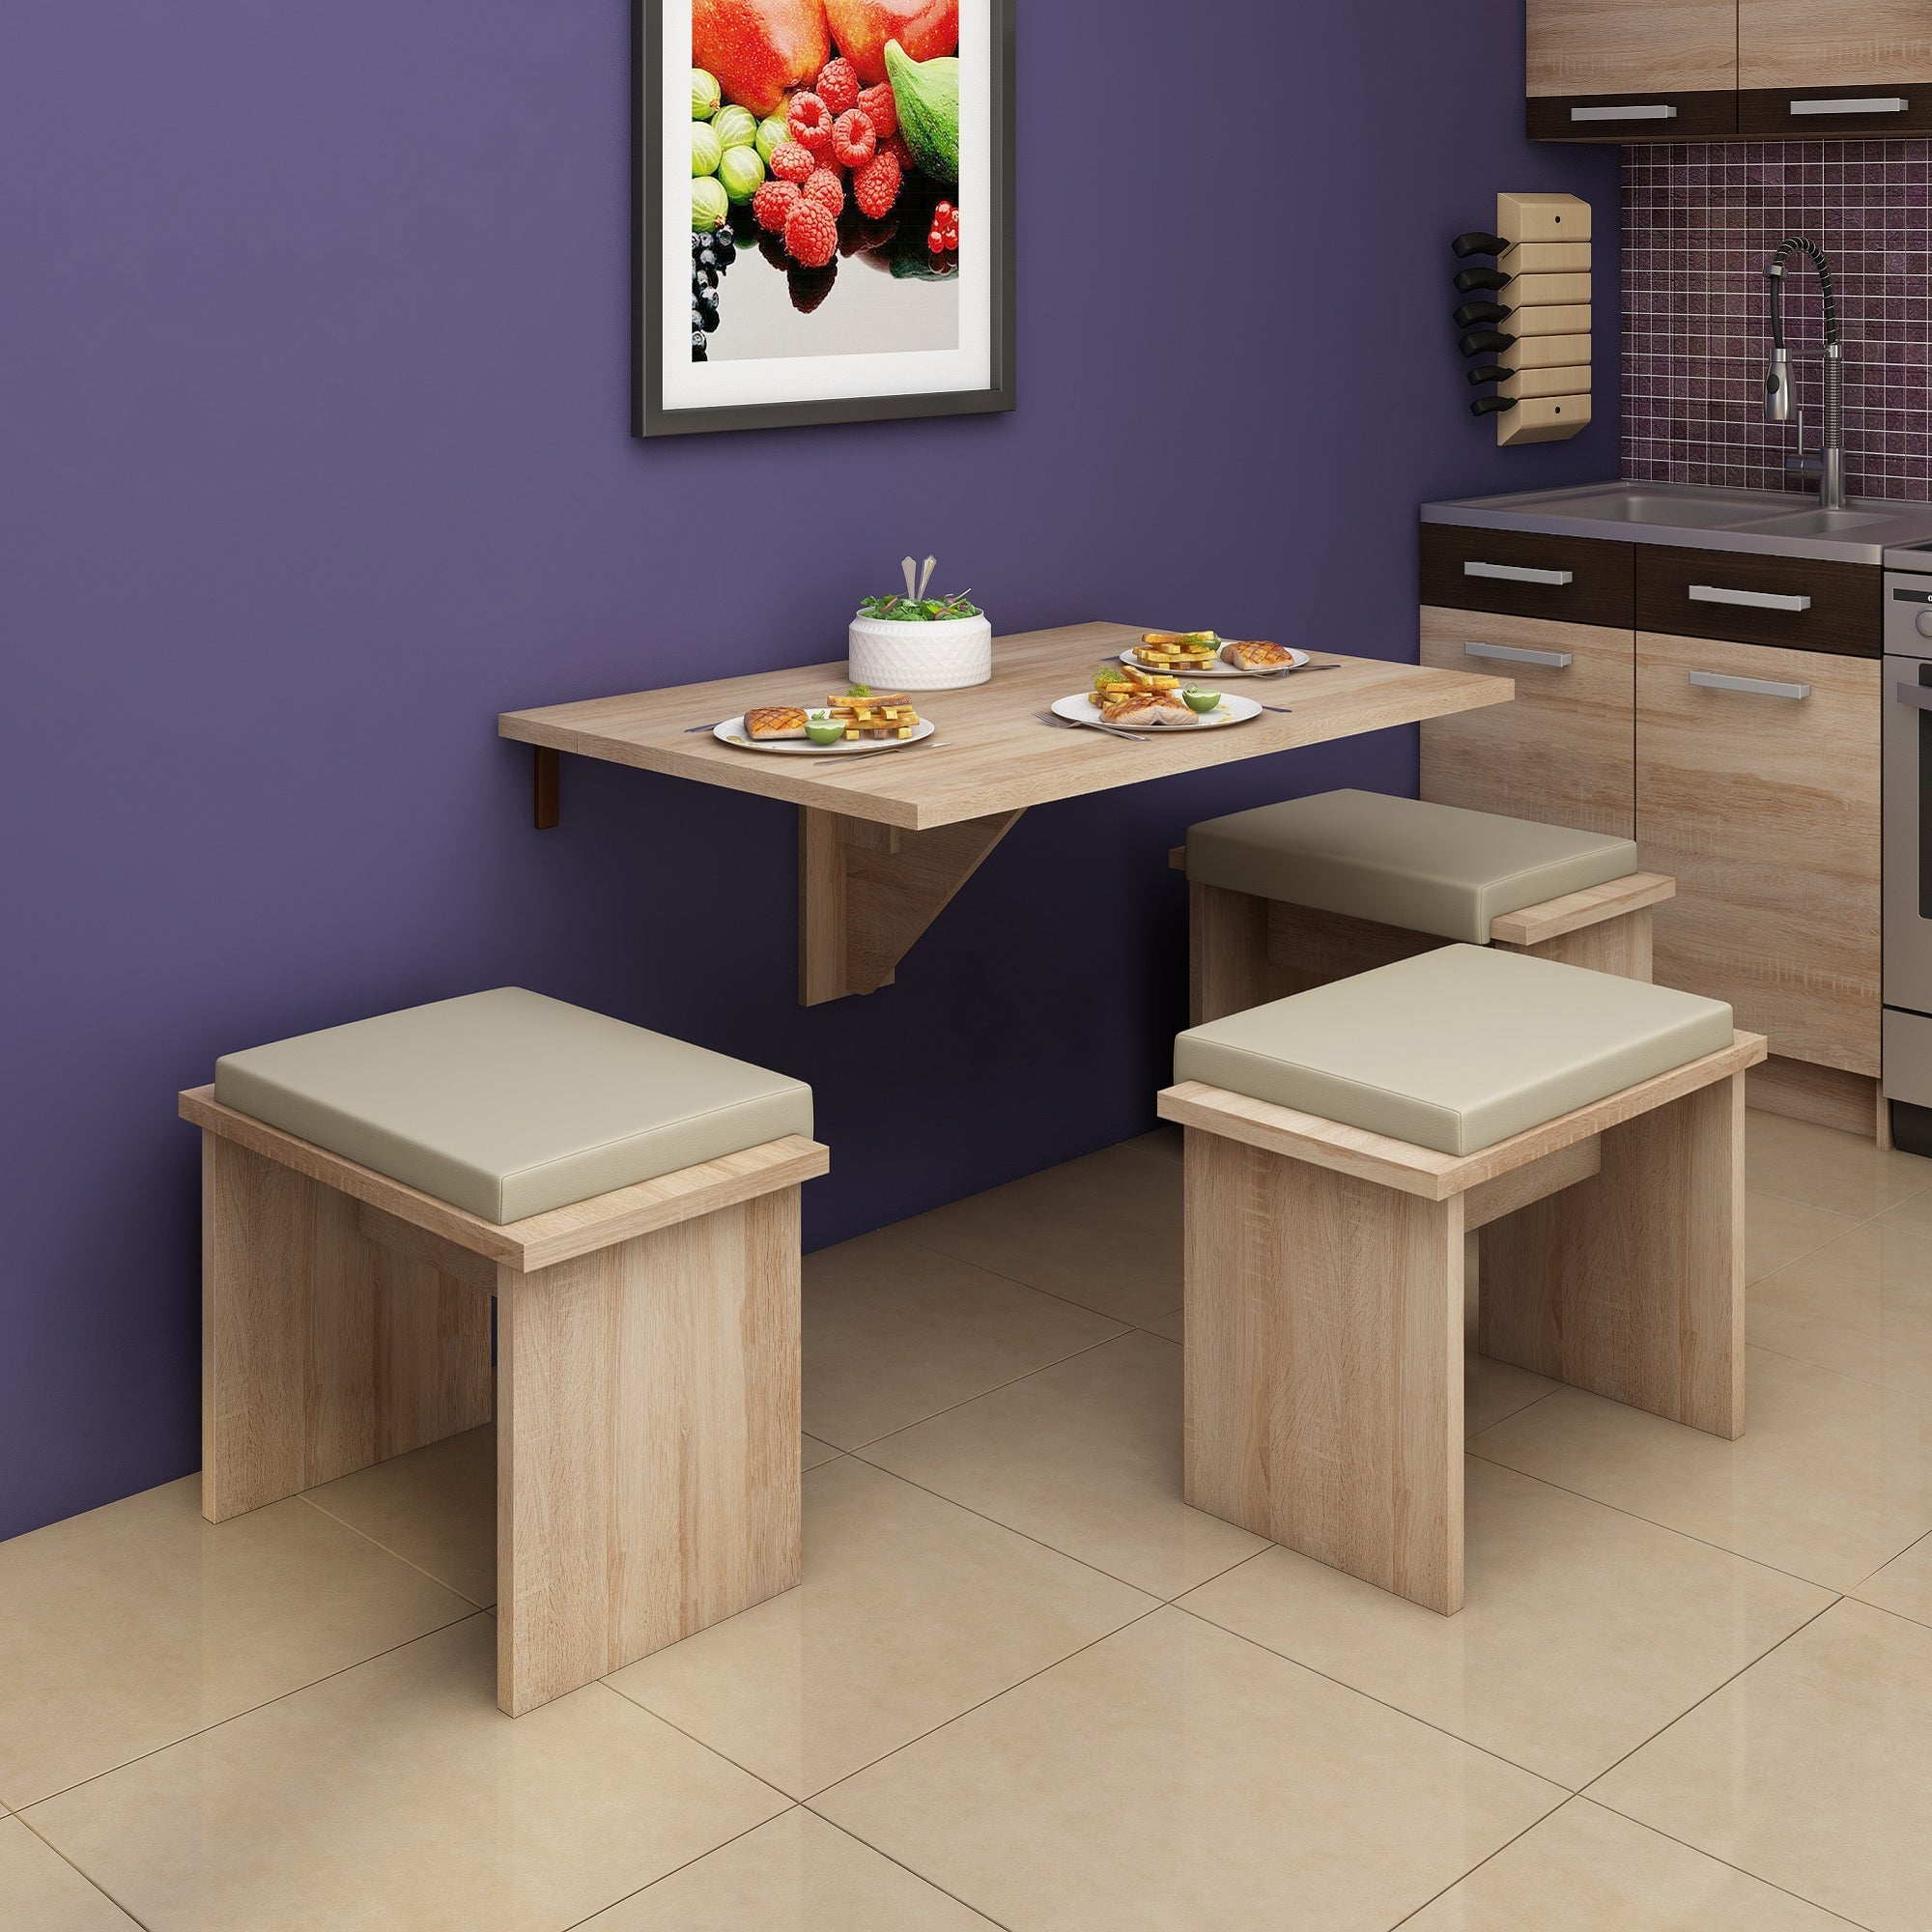 Expert D Wall-Mounted Drop Leaf Dining Table | Furniture Agency